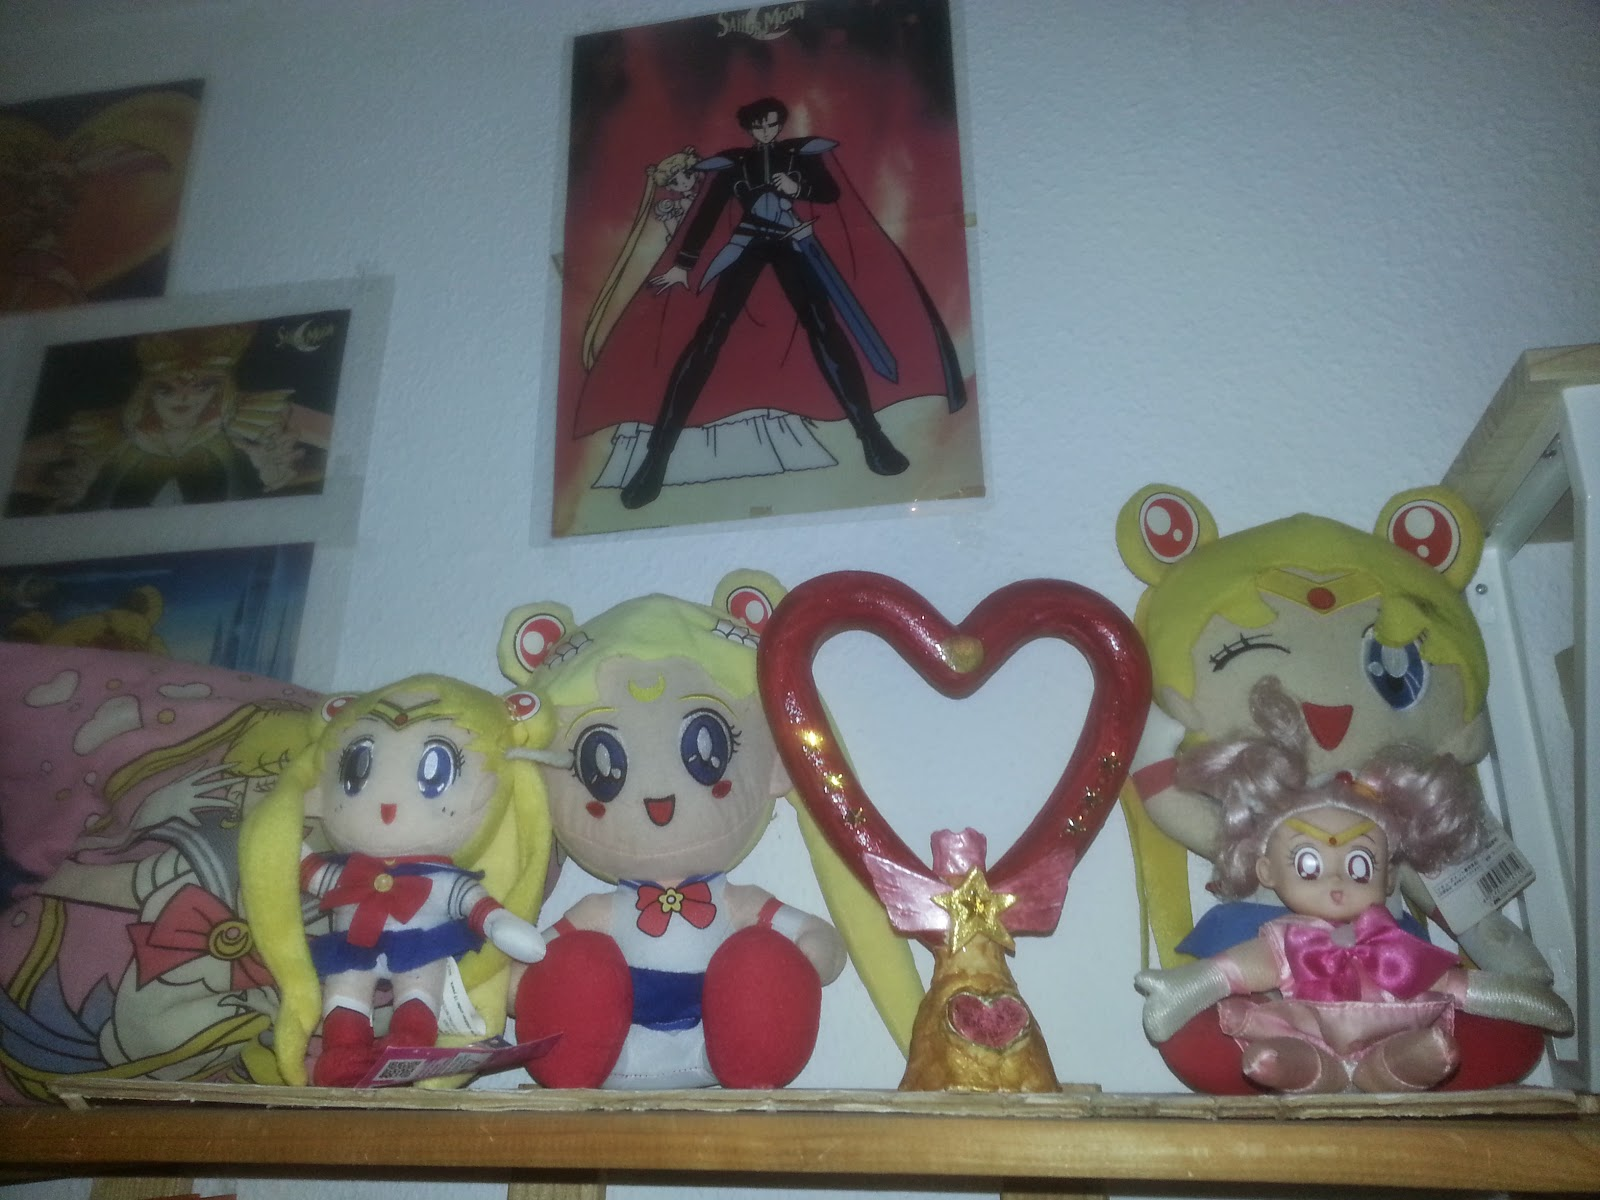 Sailor Moon Plush and Twinkle Yell handmade